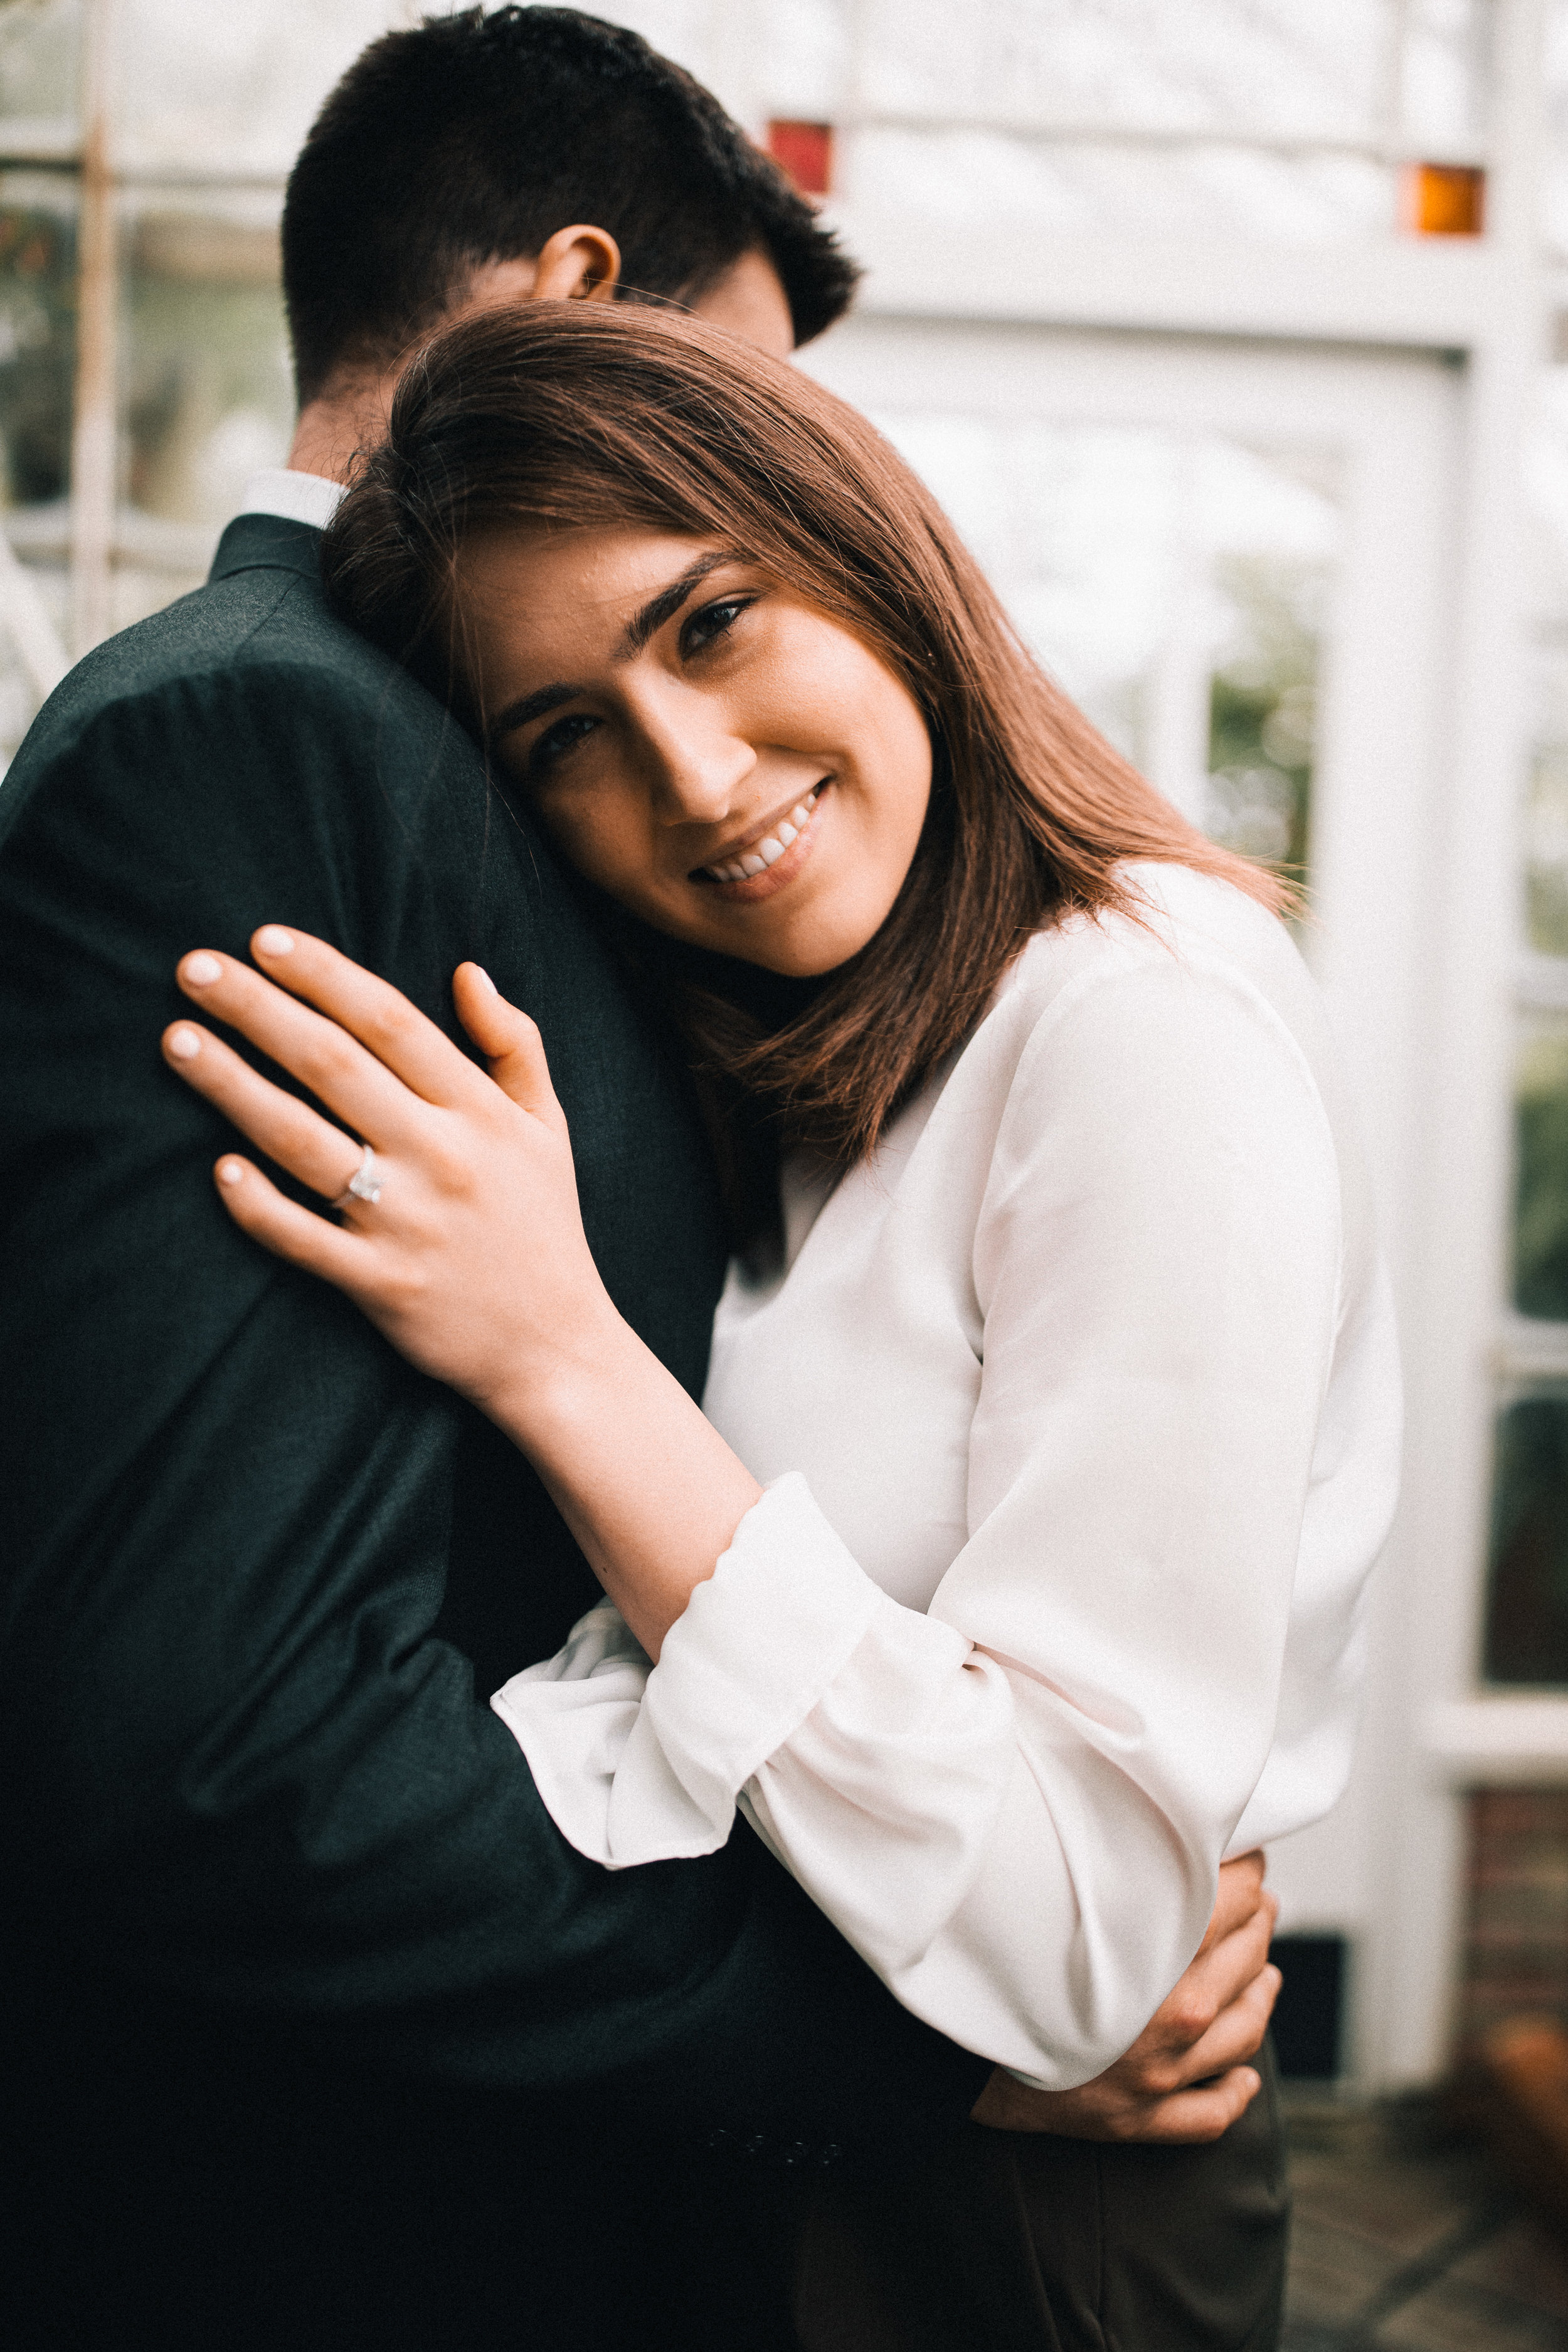 2019_04_ 072019.04.08 Ana and Richard Engagement Session Edited For Web 0009.jpg